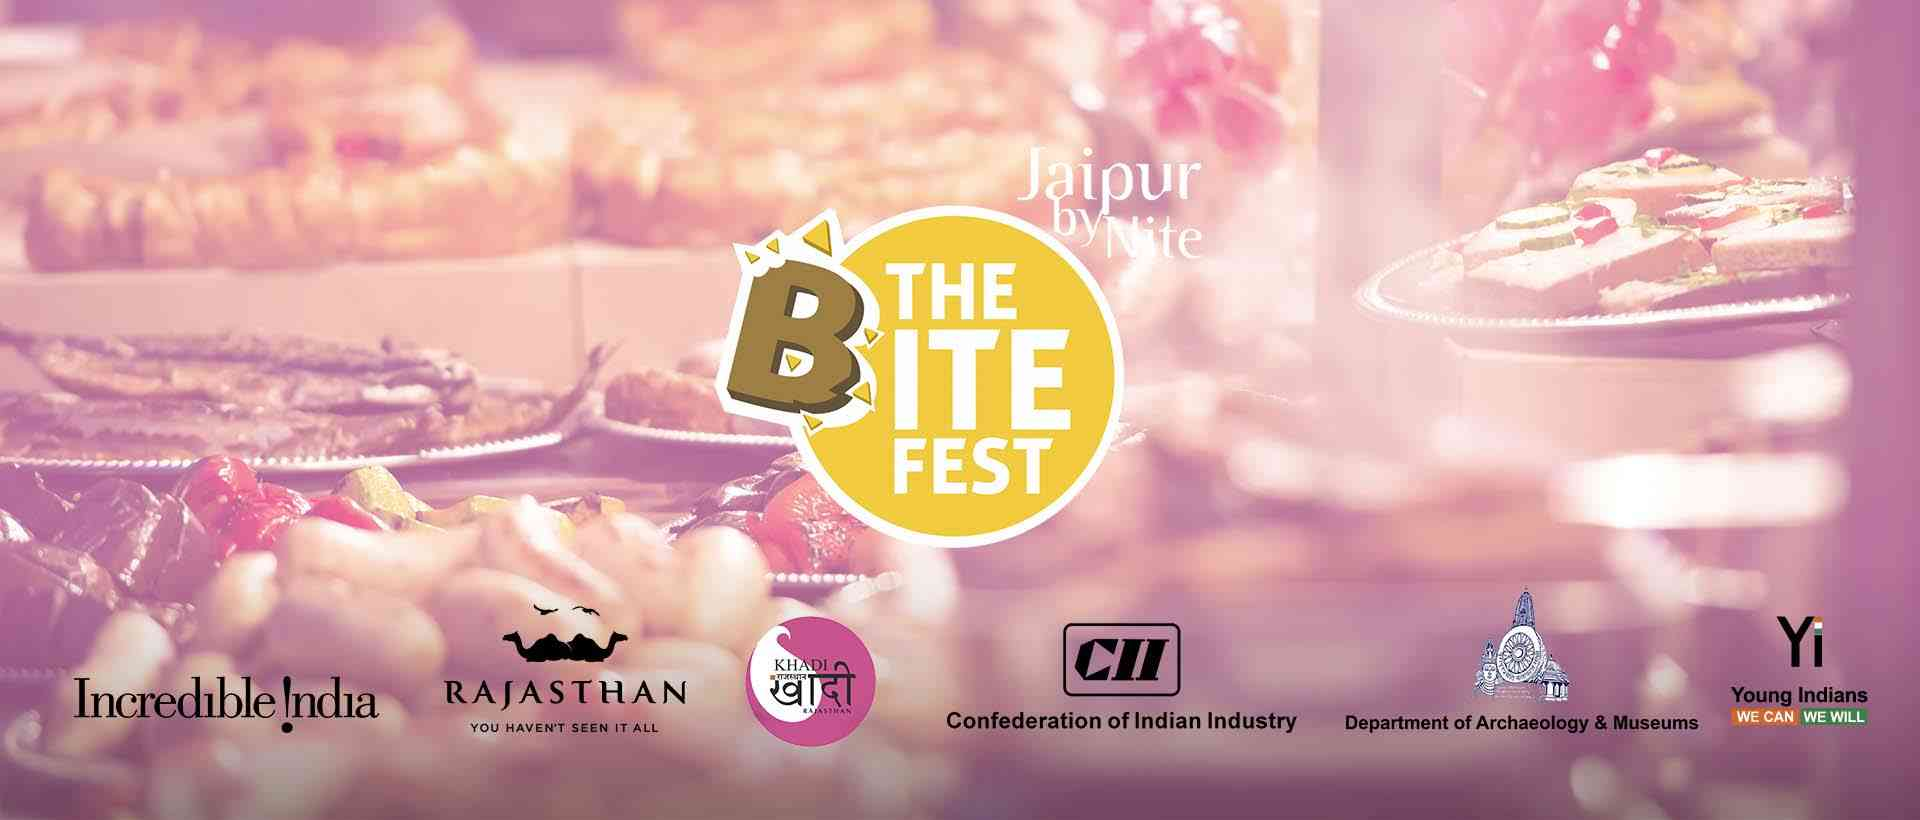 "Jaipur's biggest food festival ""The Bite Fest"" on 15 September 2017 at the magnificent City Palace Jaipur."